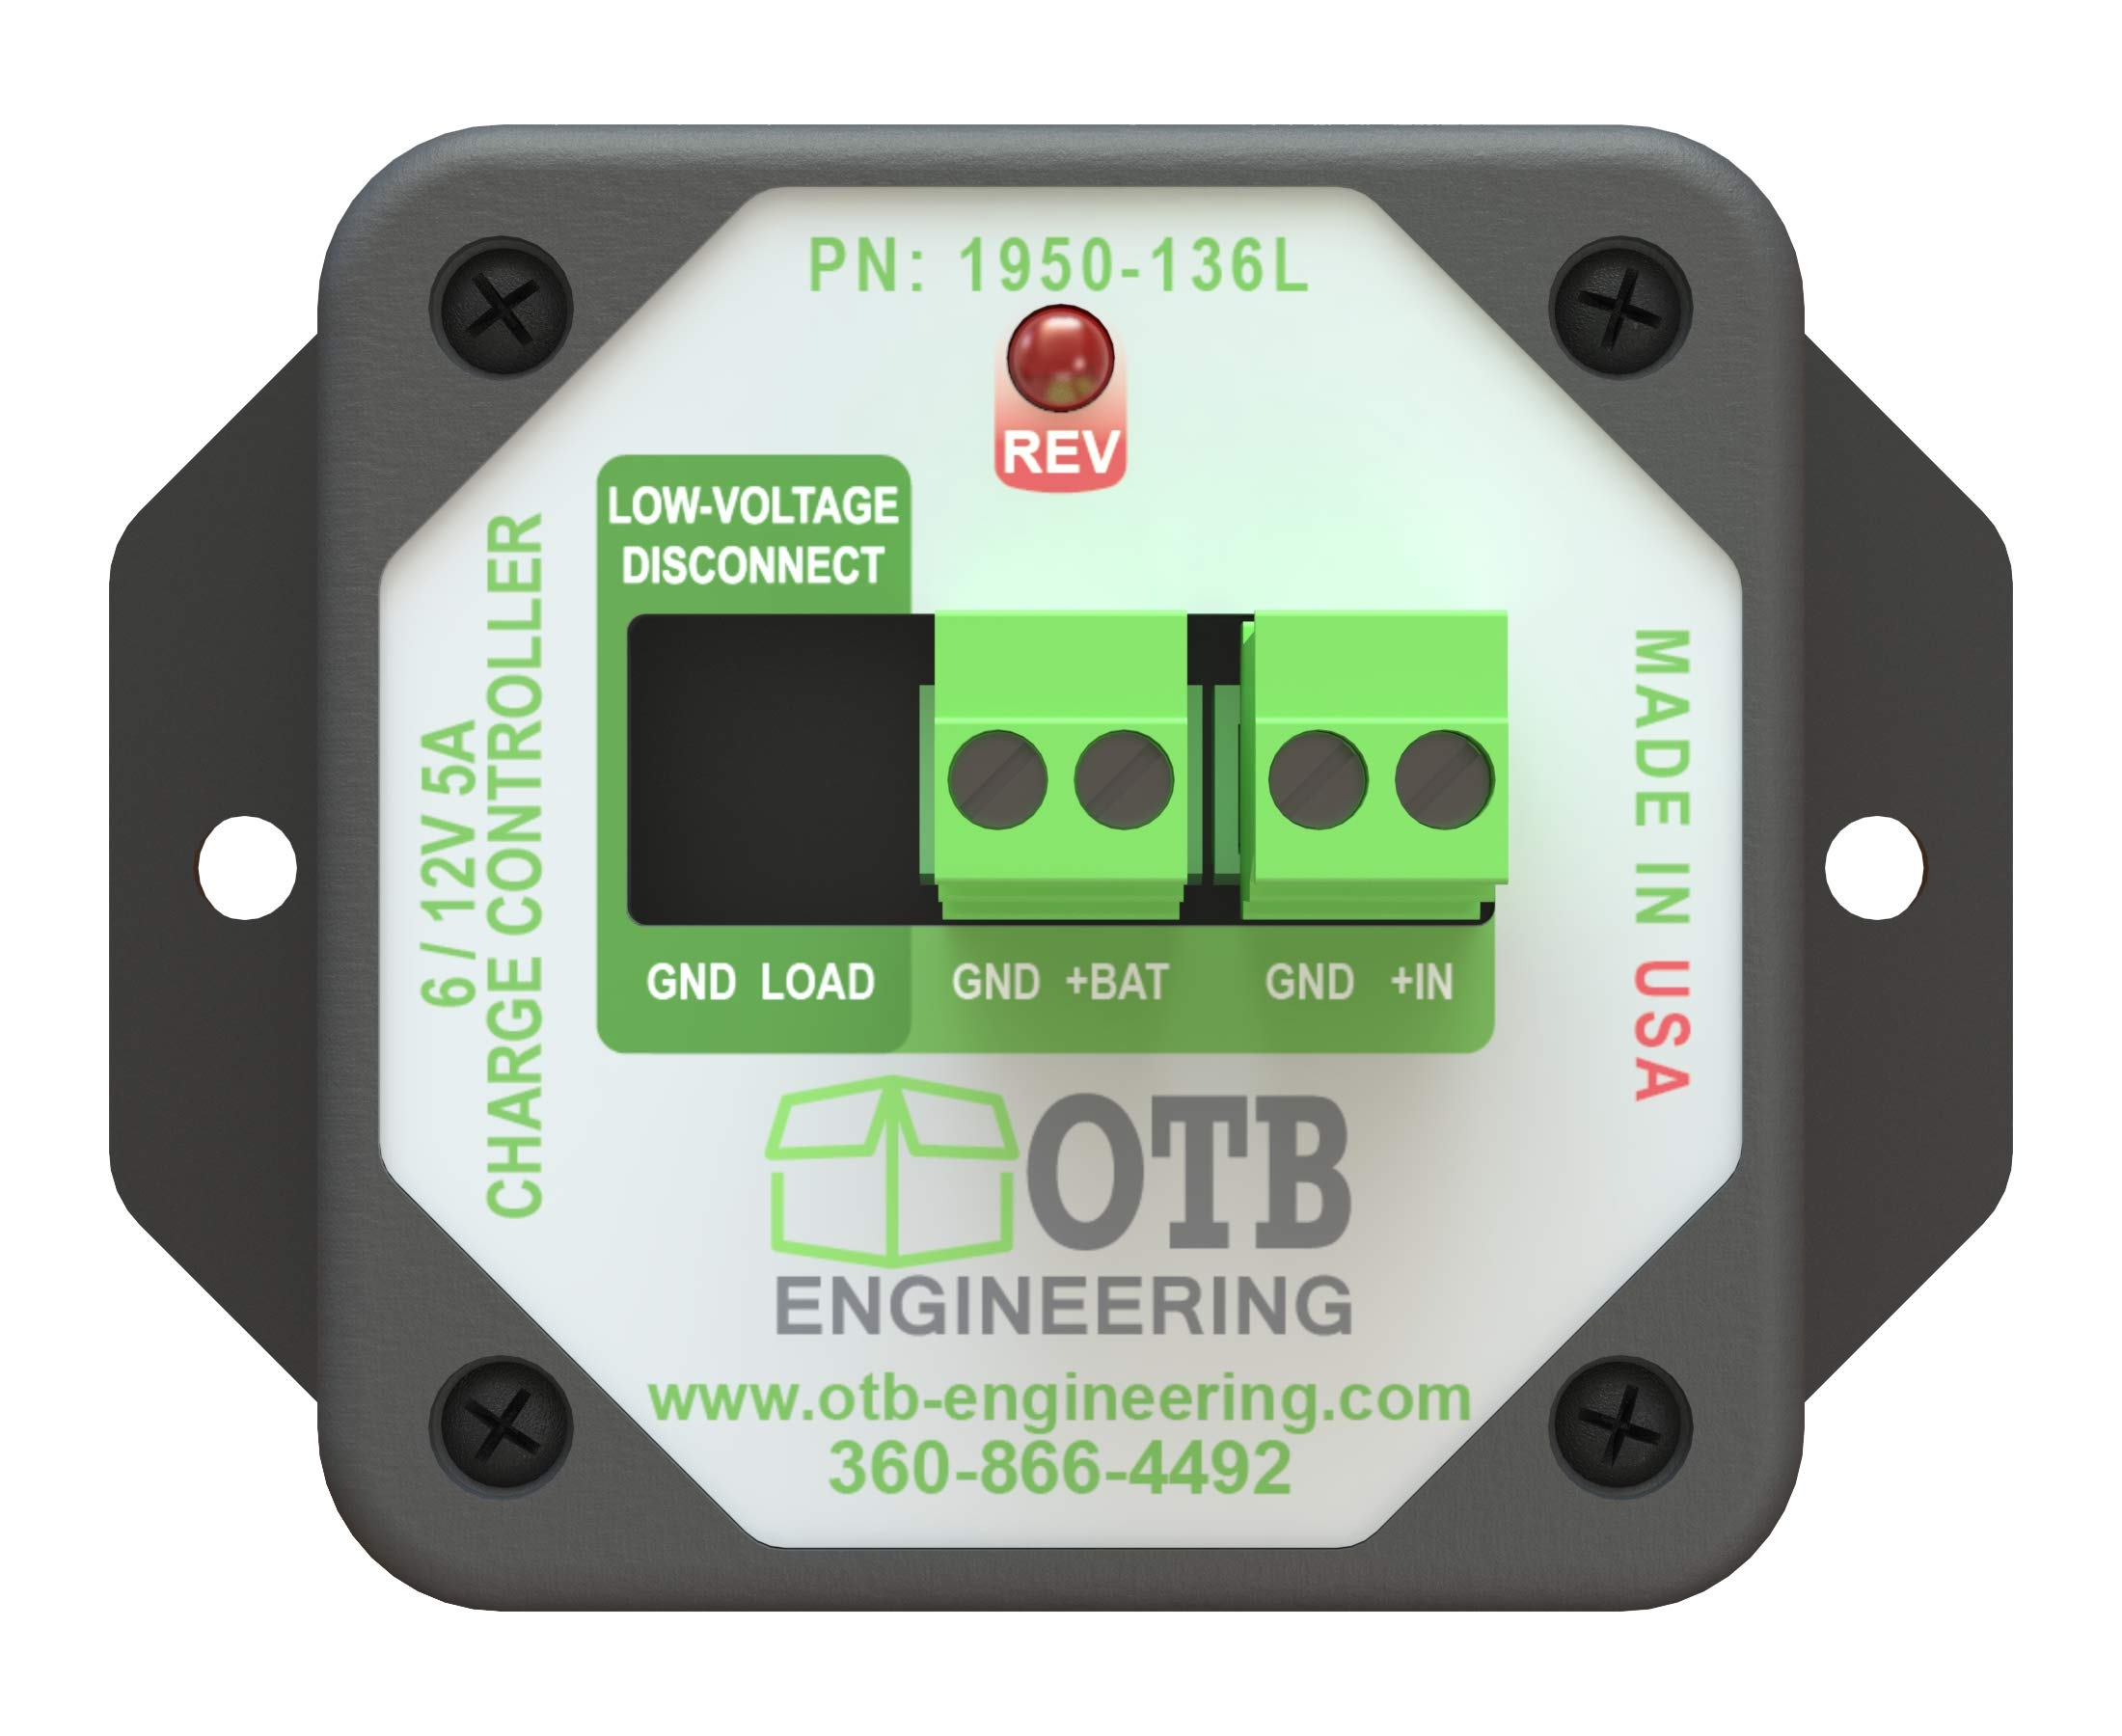 OTB Engineering Solar Charge Controller - 400μA Self-Consumption - 6/12V, 5A by OTB Engineering